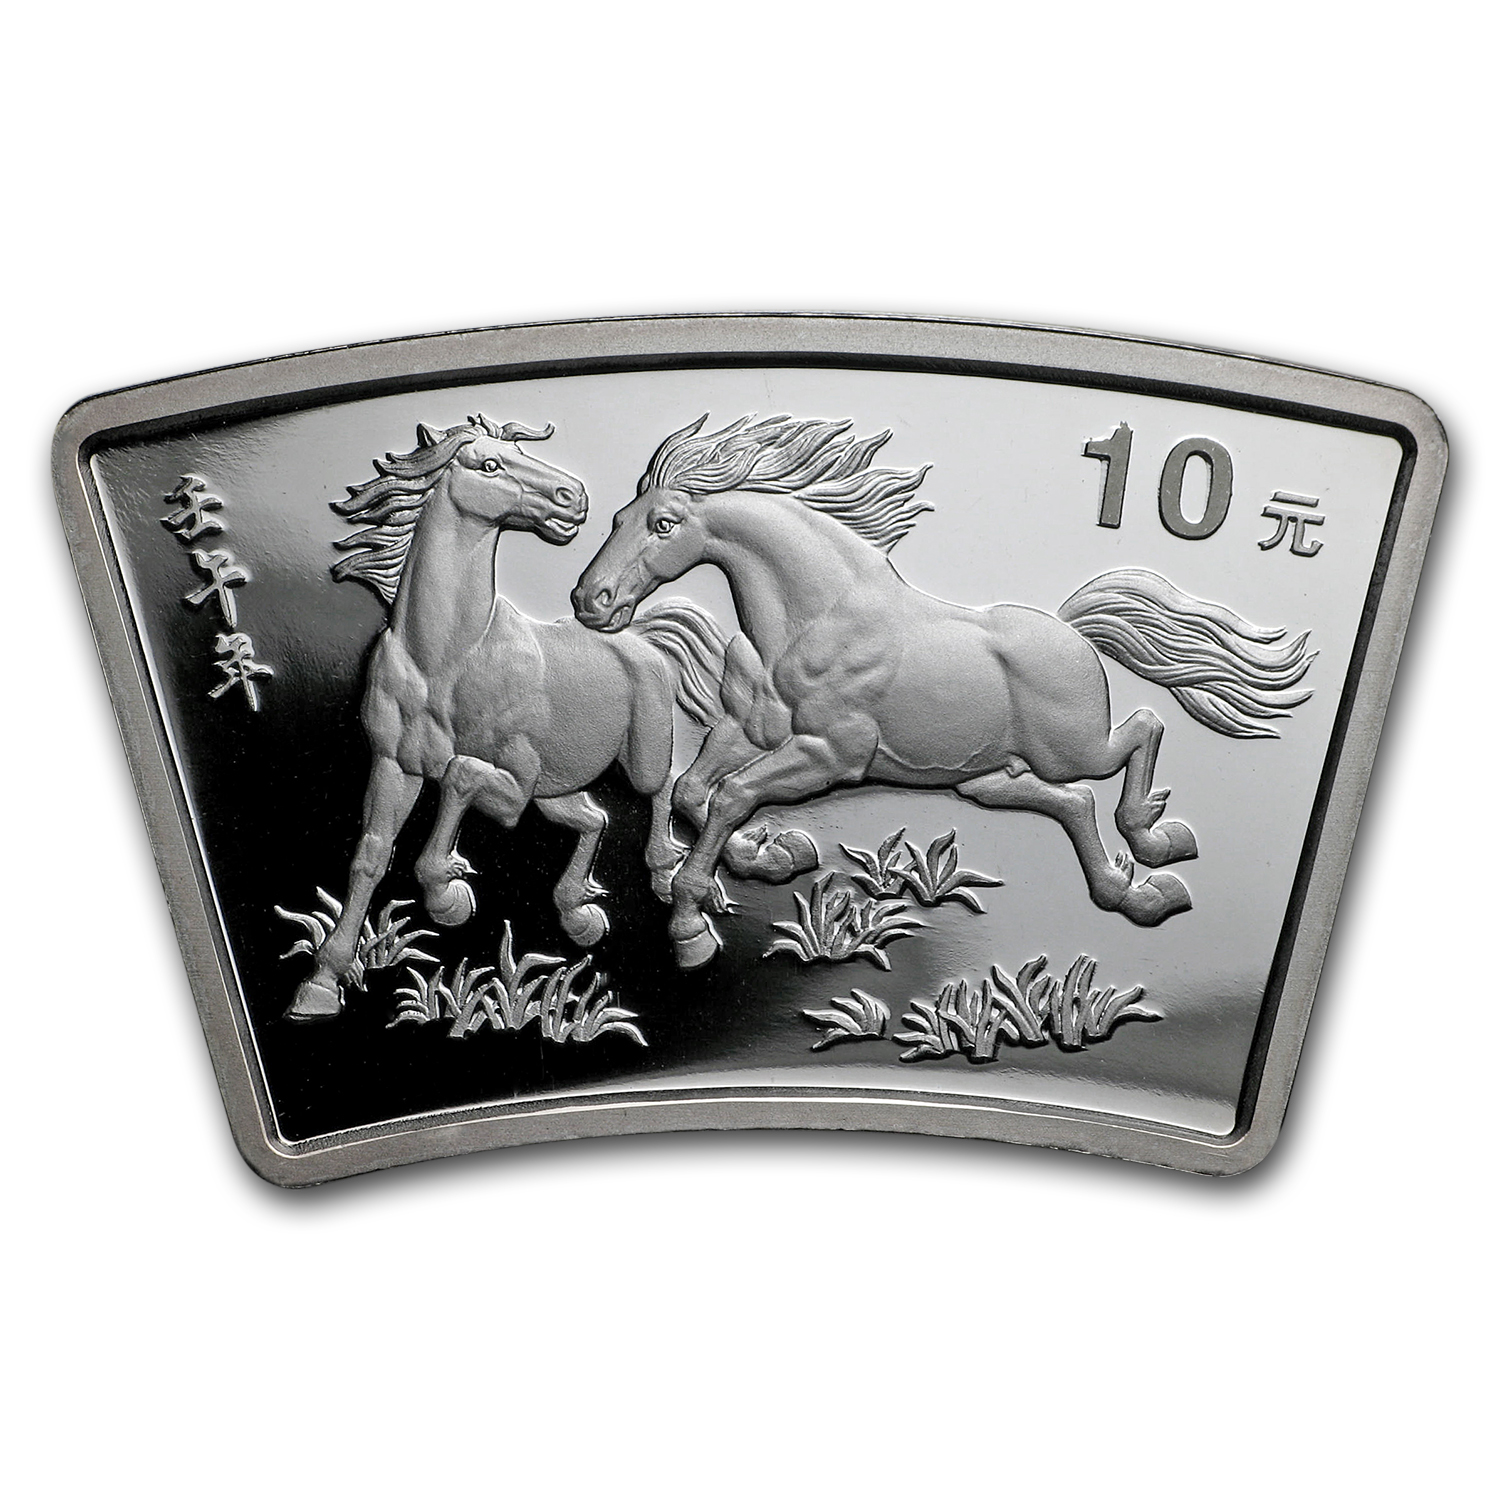 2002 1 oz Silver Fan Shaped (Year of the Horse) (w/ Box & COA)